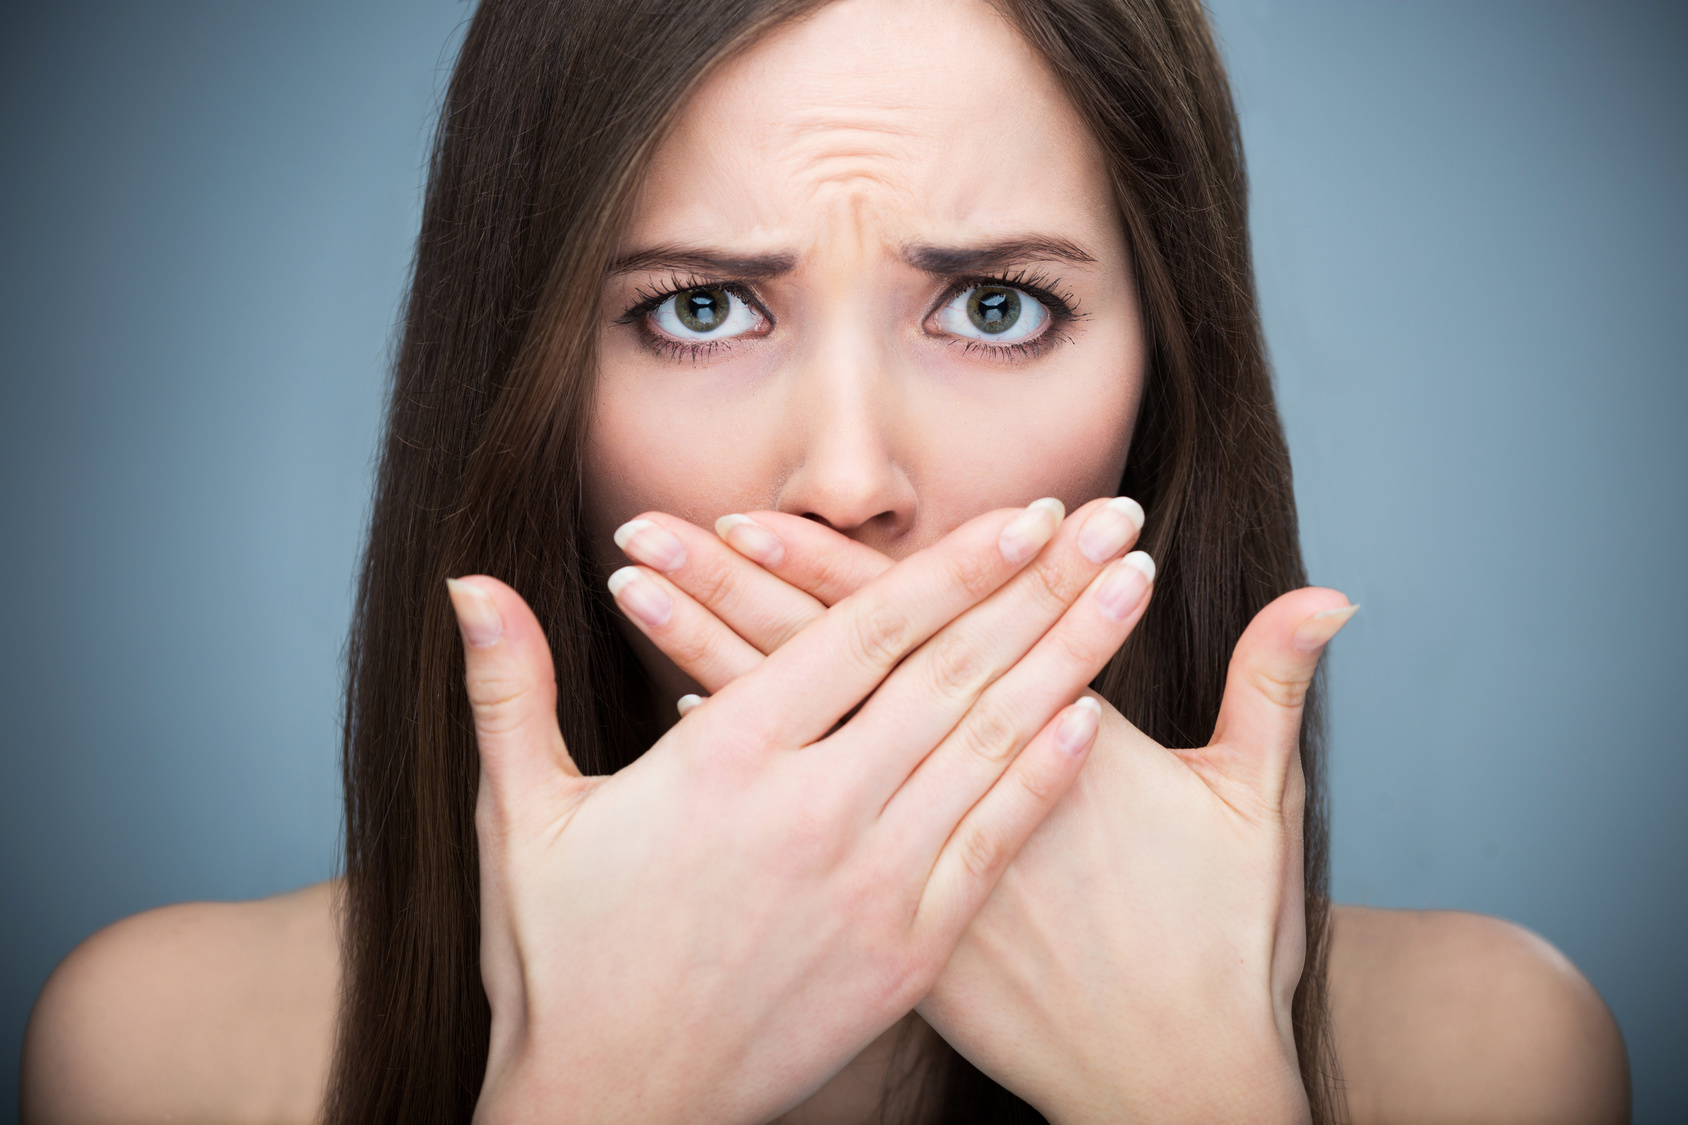 Bad Breath Doesn't Have to Ruin Your Day